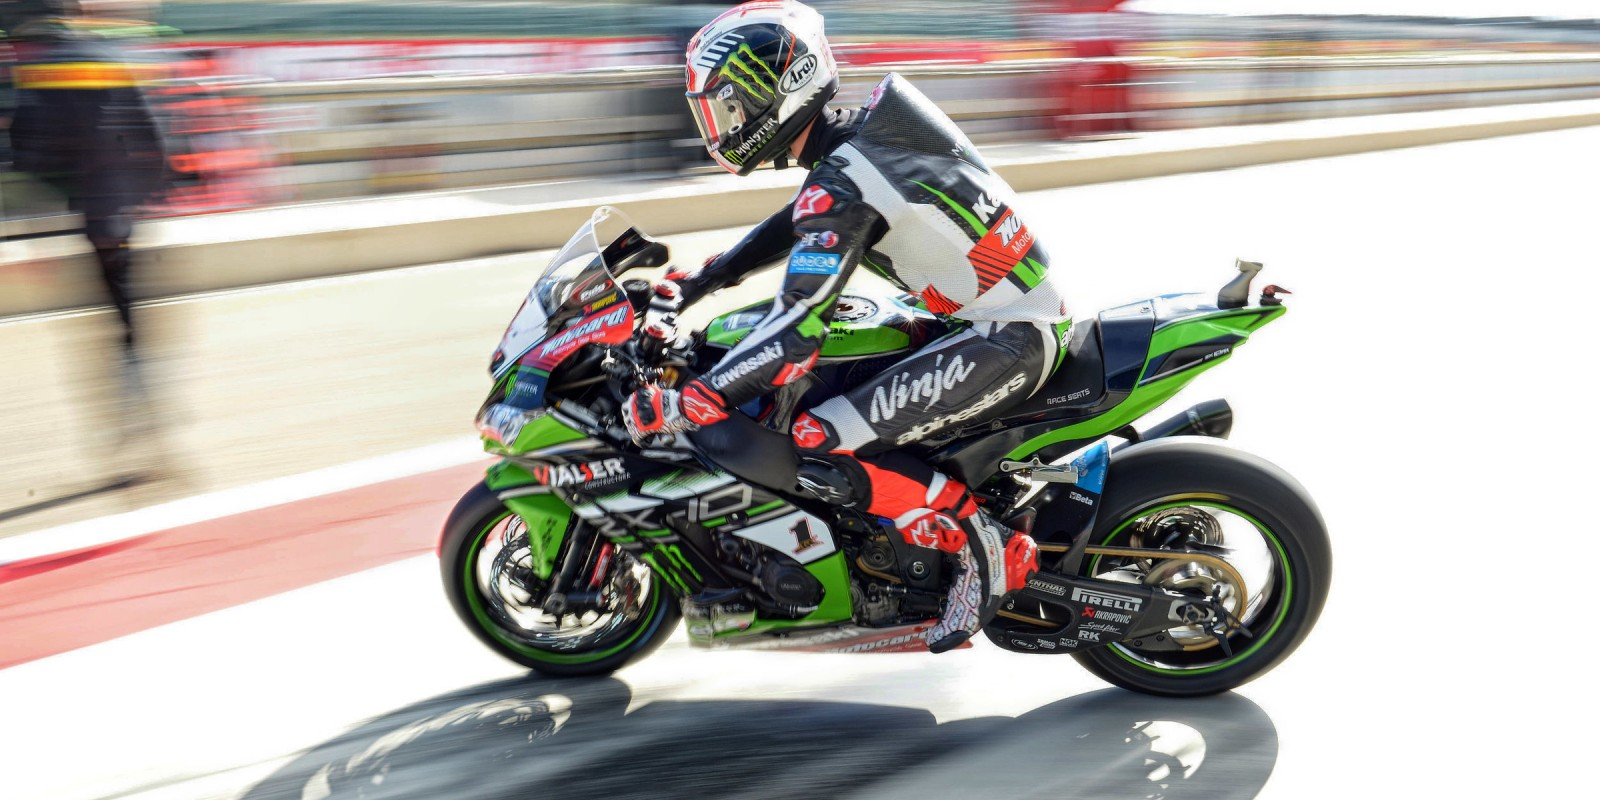 Jonathan Rea at the 2017 World Superbike Pirelli Aragon Round